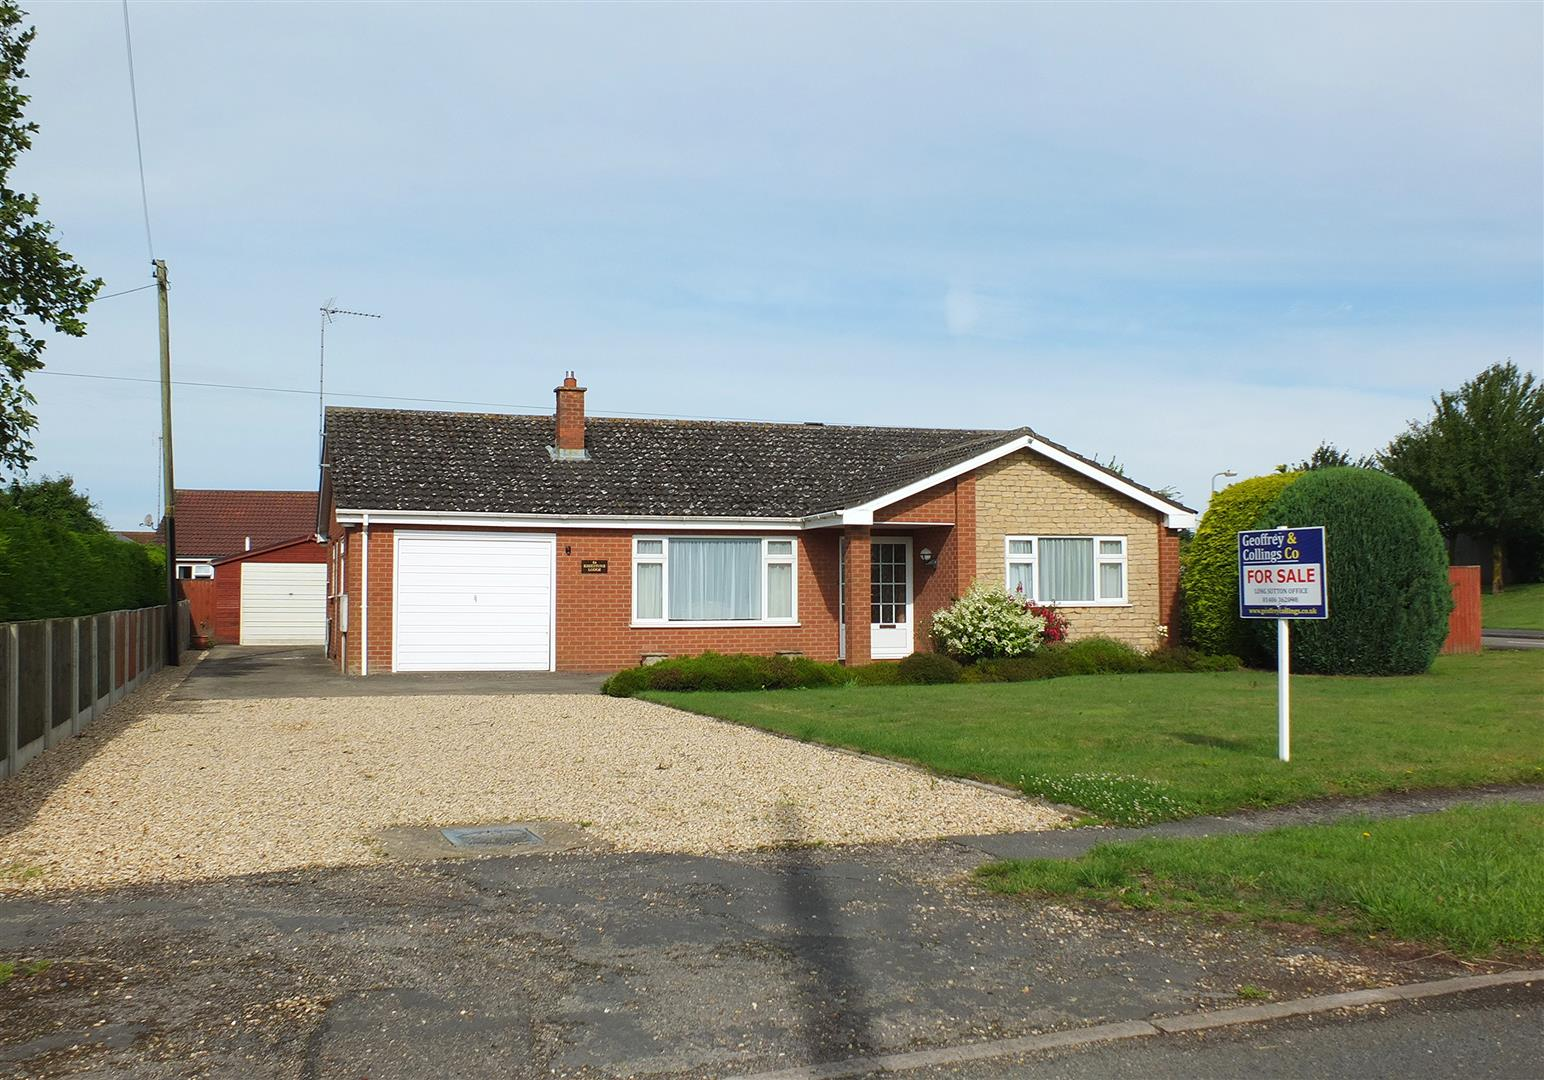 3 bed detached bungalow for sale in Long Sutton Spalding, PE12 9AD  - Property Image 1